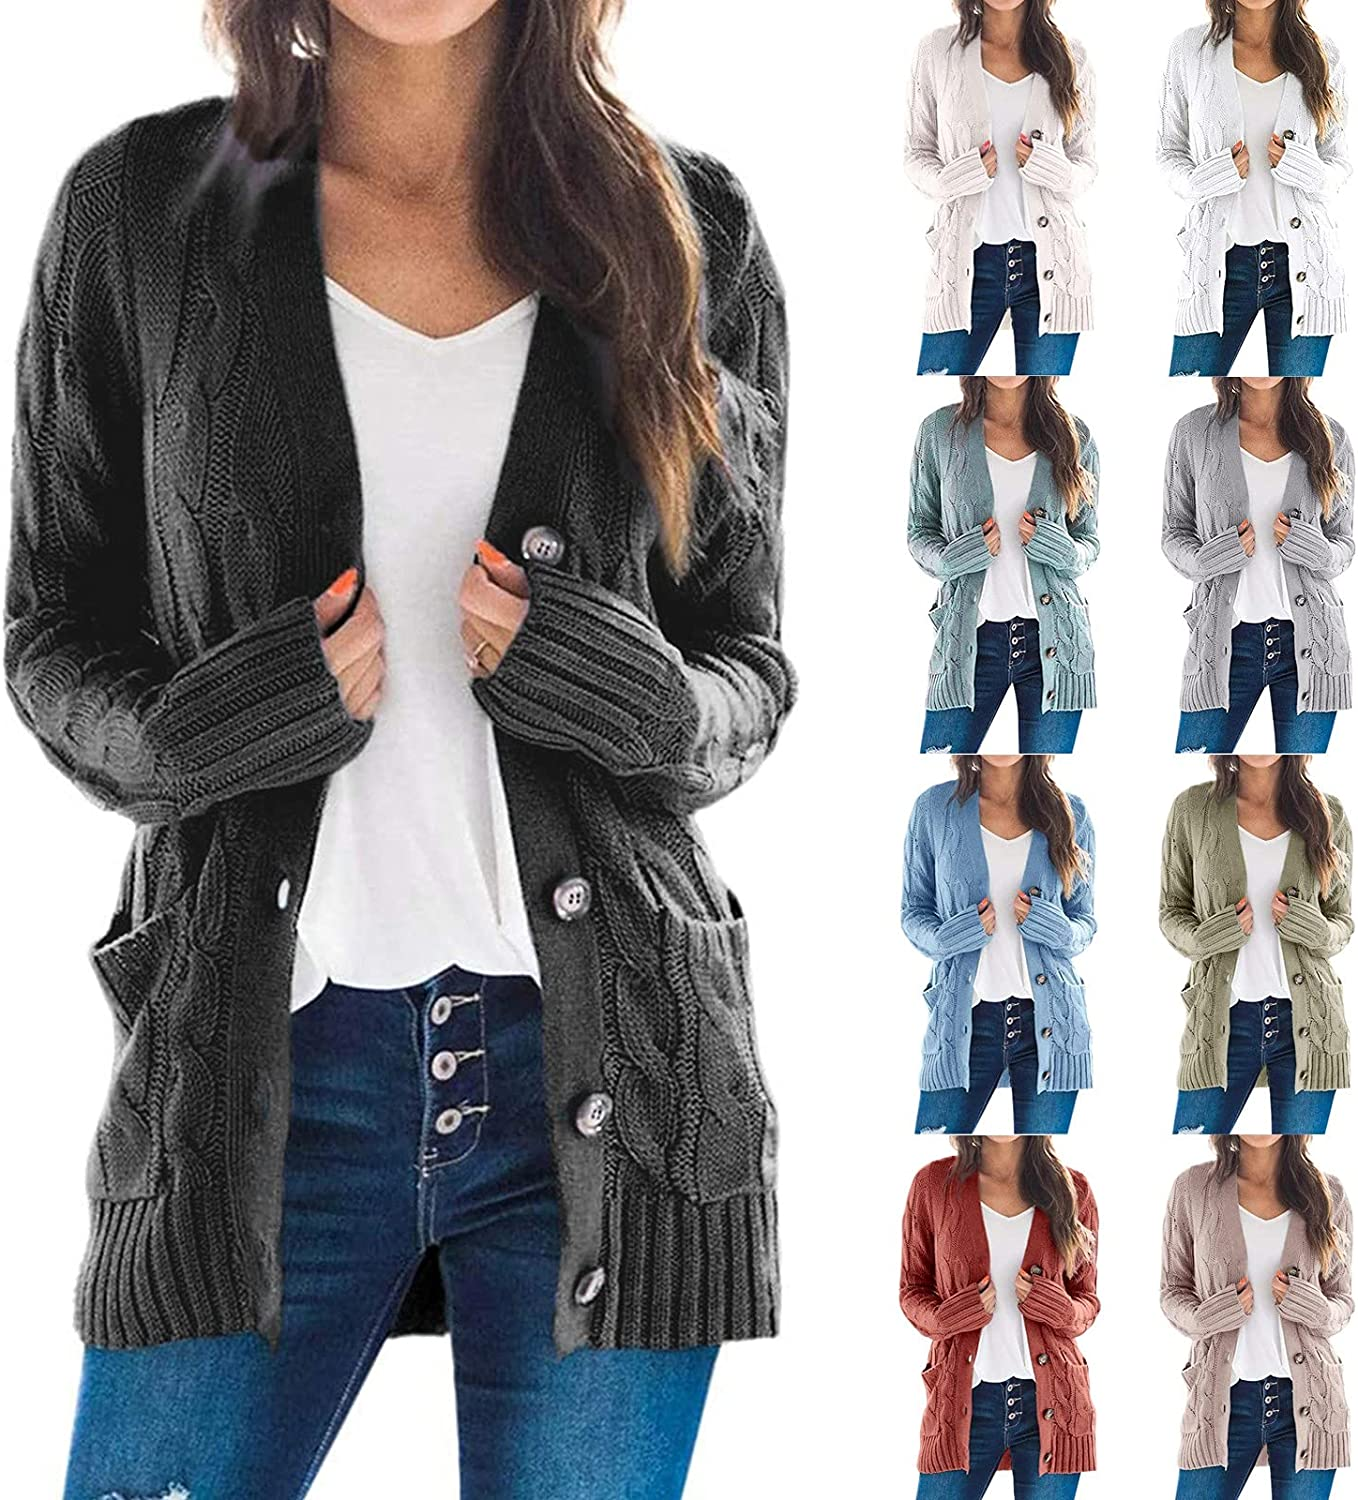 SERYU Women's Button Loose Cardigan Long Sleeve Cable Knit Sweater Open Front Outerwear